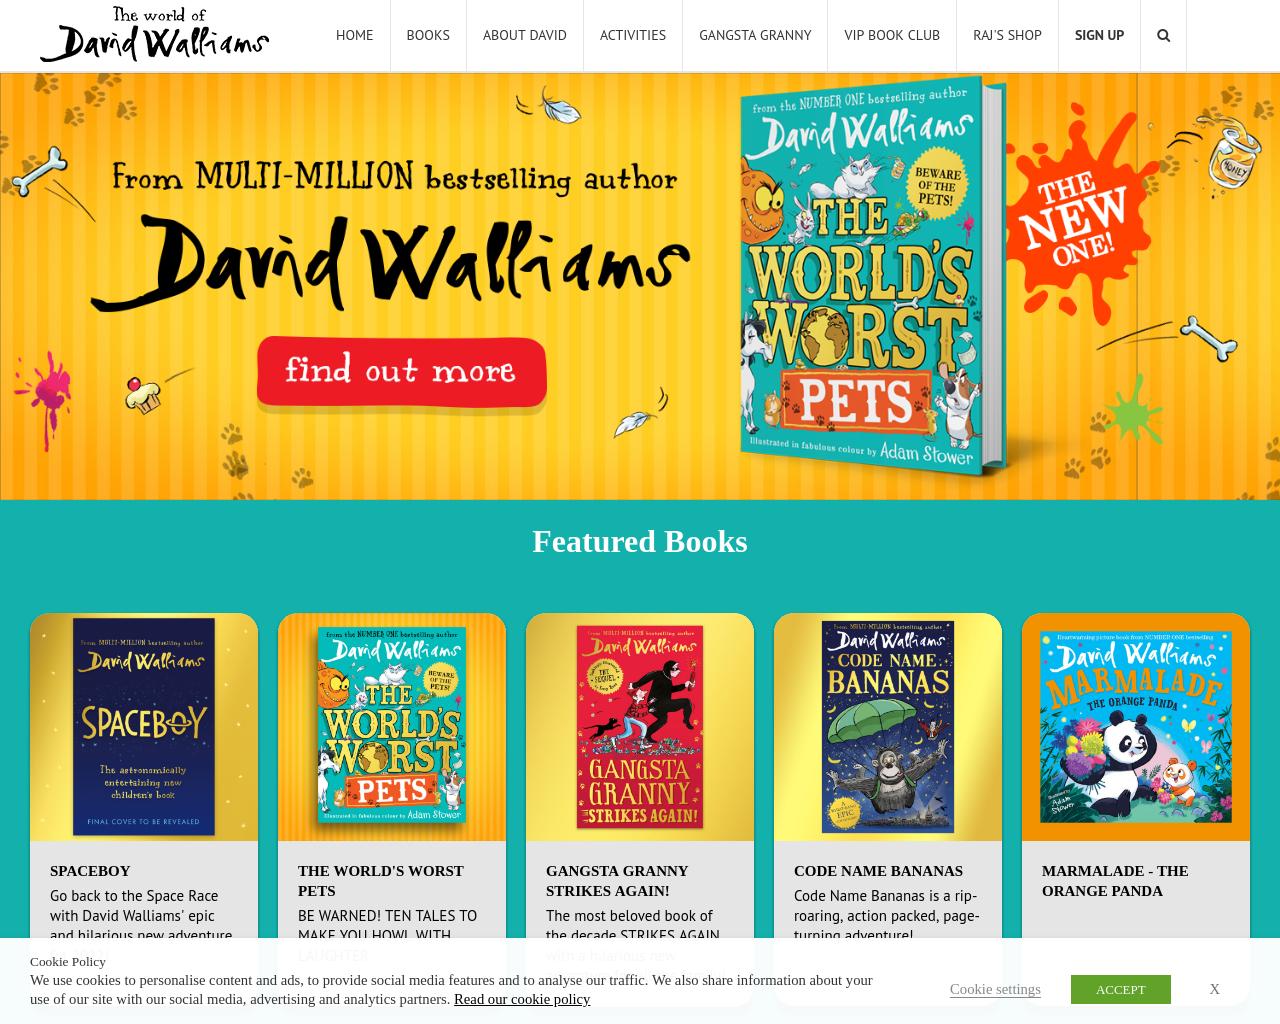 David Walliams stories